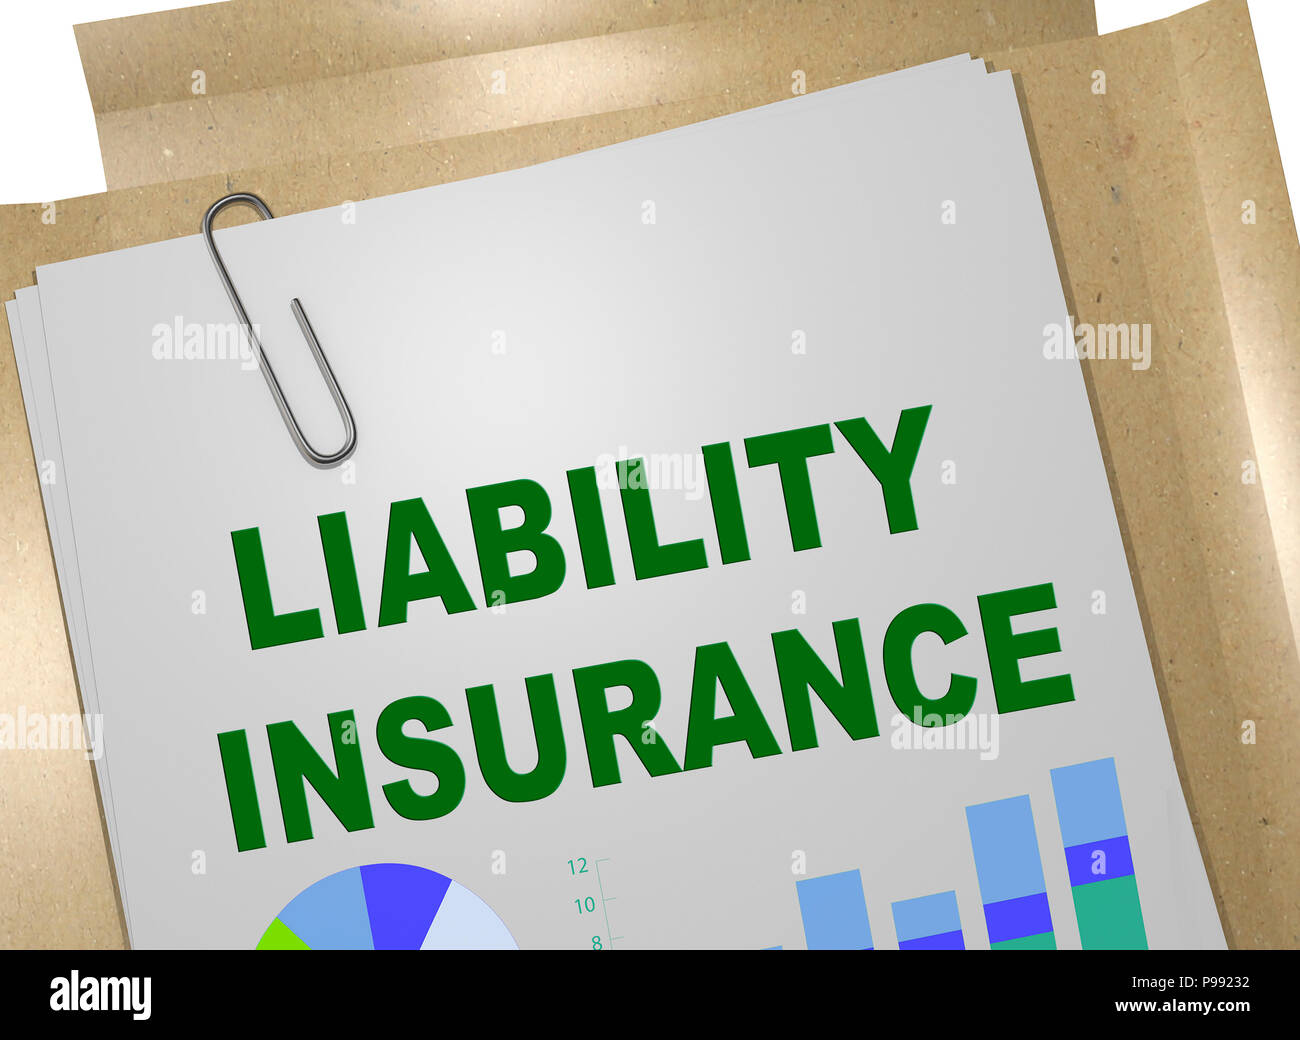 3D illustration of LIABILITY INSURANCE title on business document - Stock Image